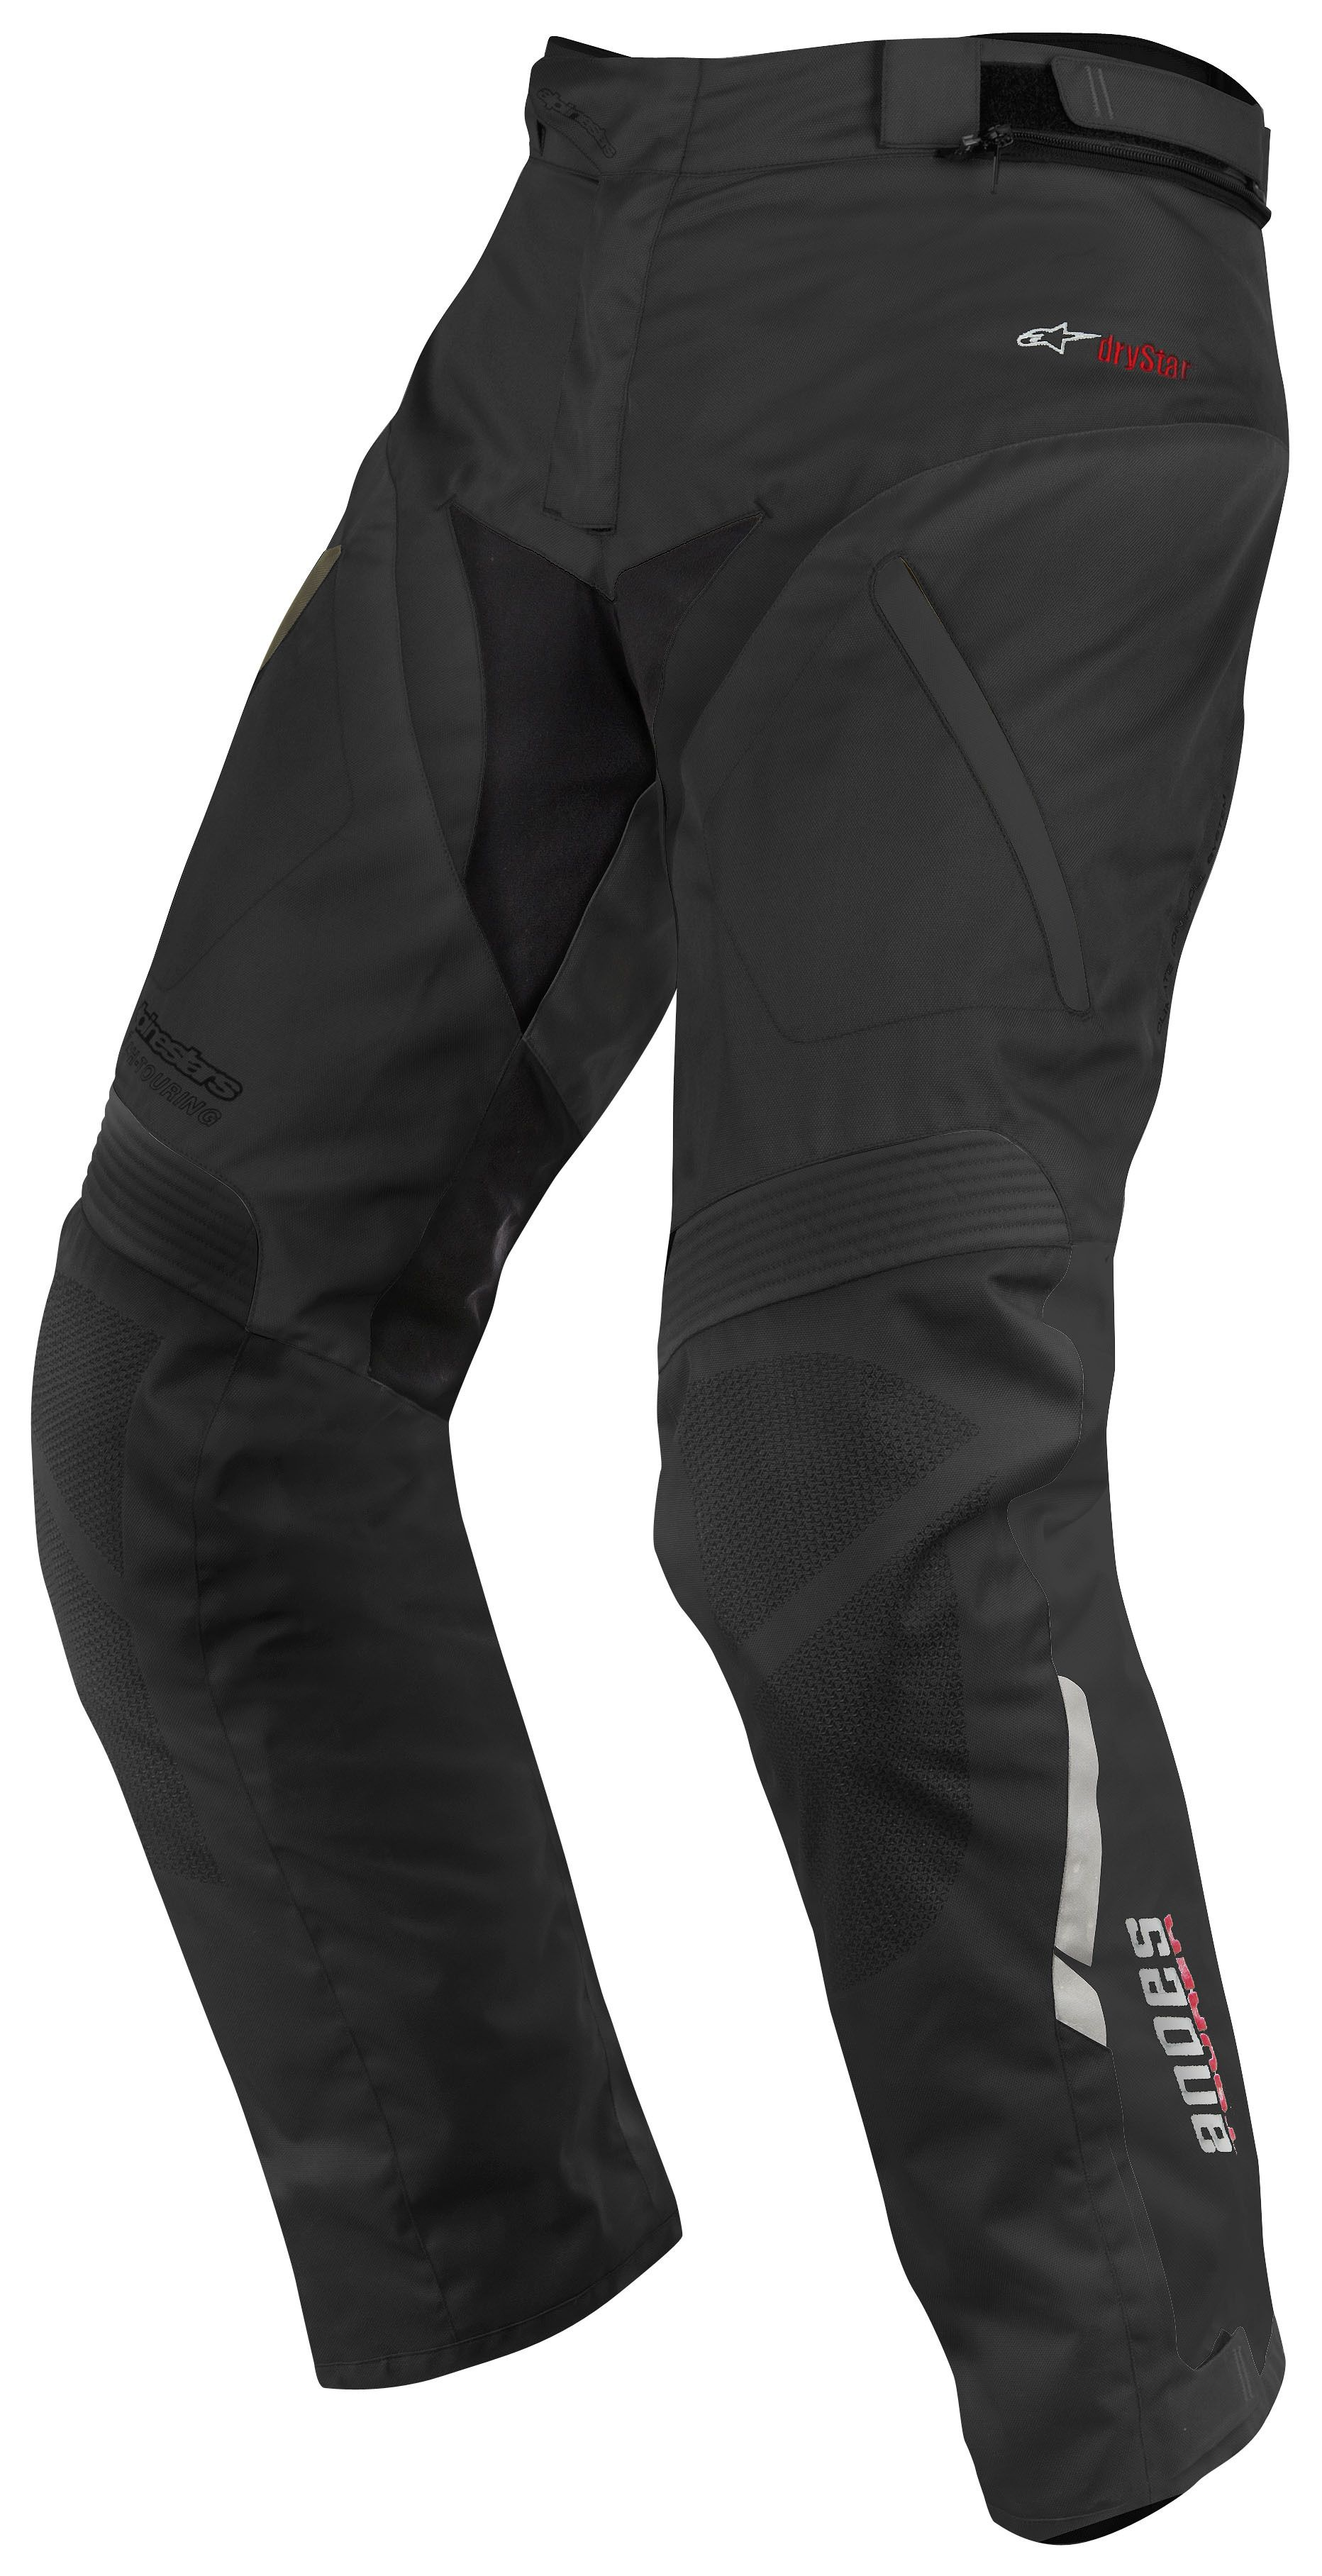 6f38d9e555a Alpinestars Andes Drystar Pants  Size LG Only